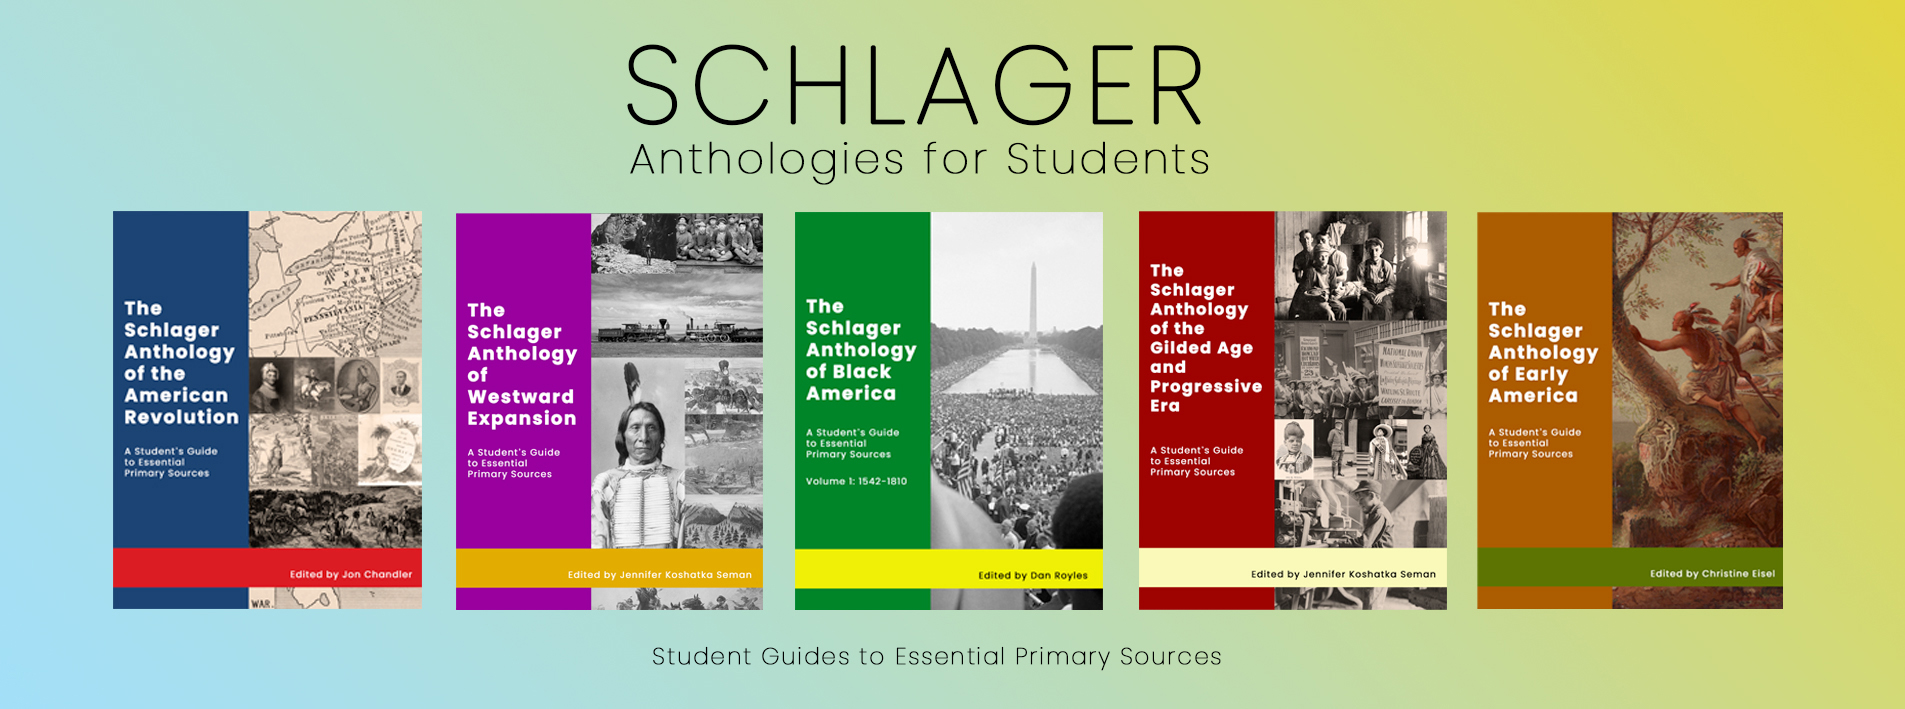 Schlager Anthologies for Students